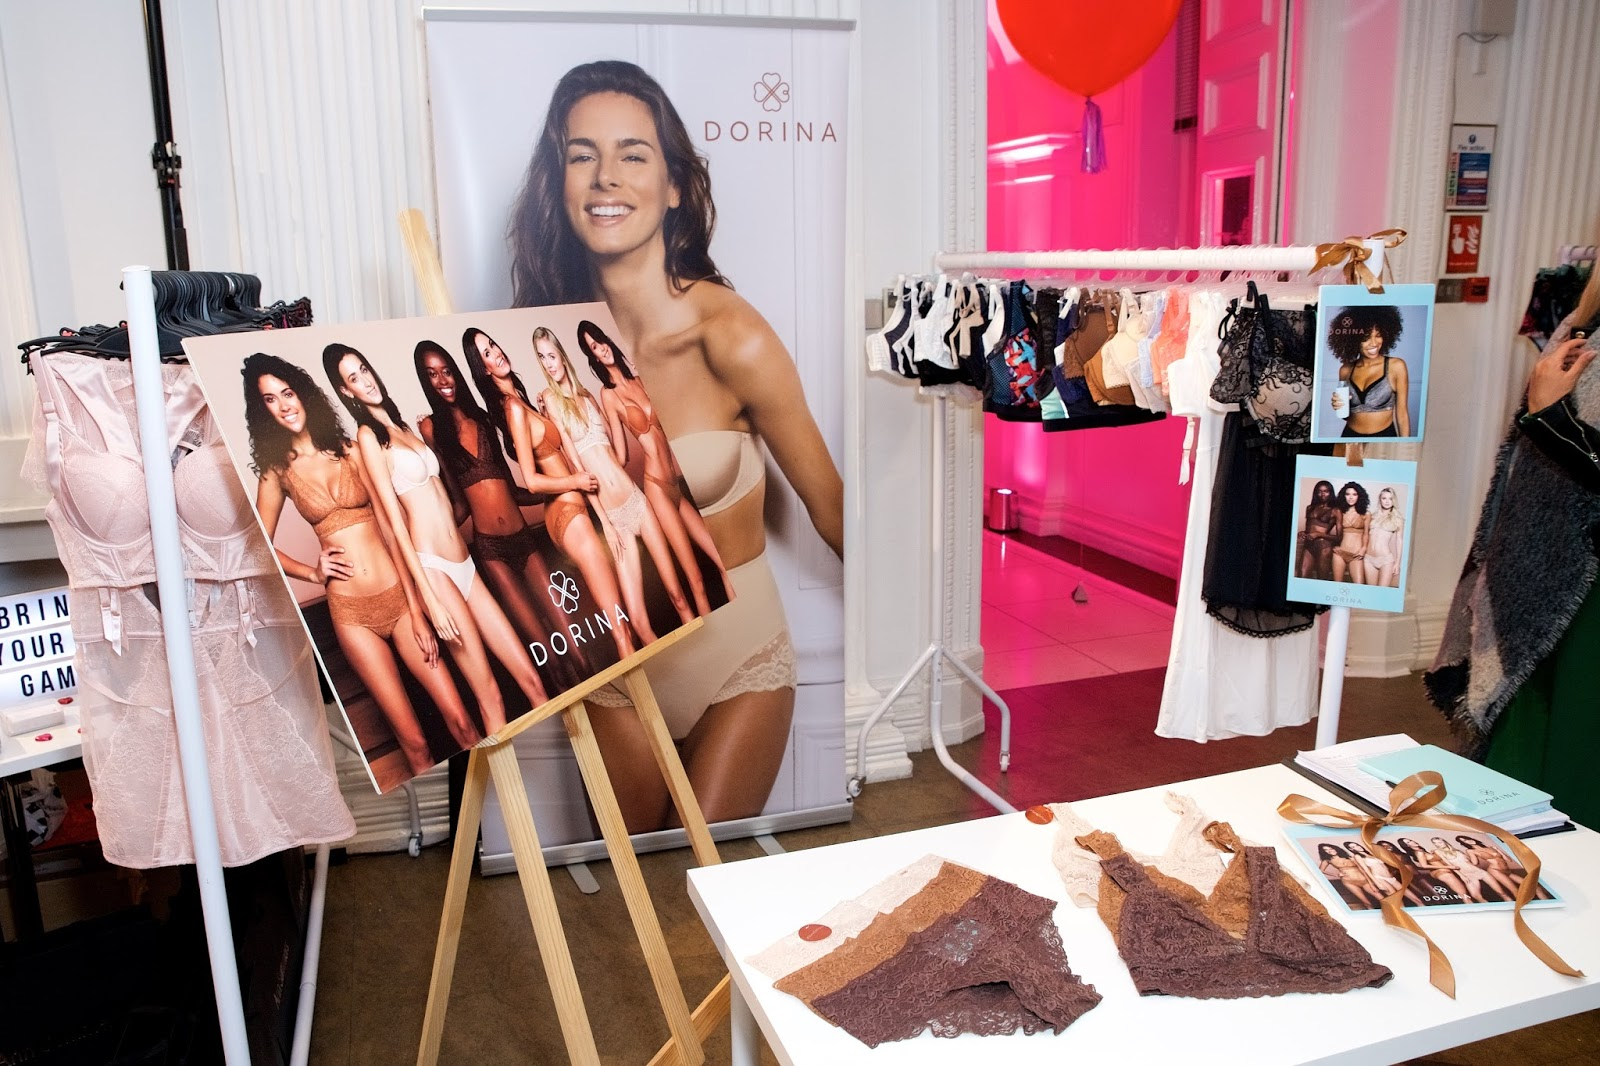 Dorina underwear display at very event